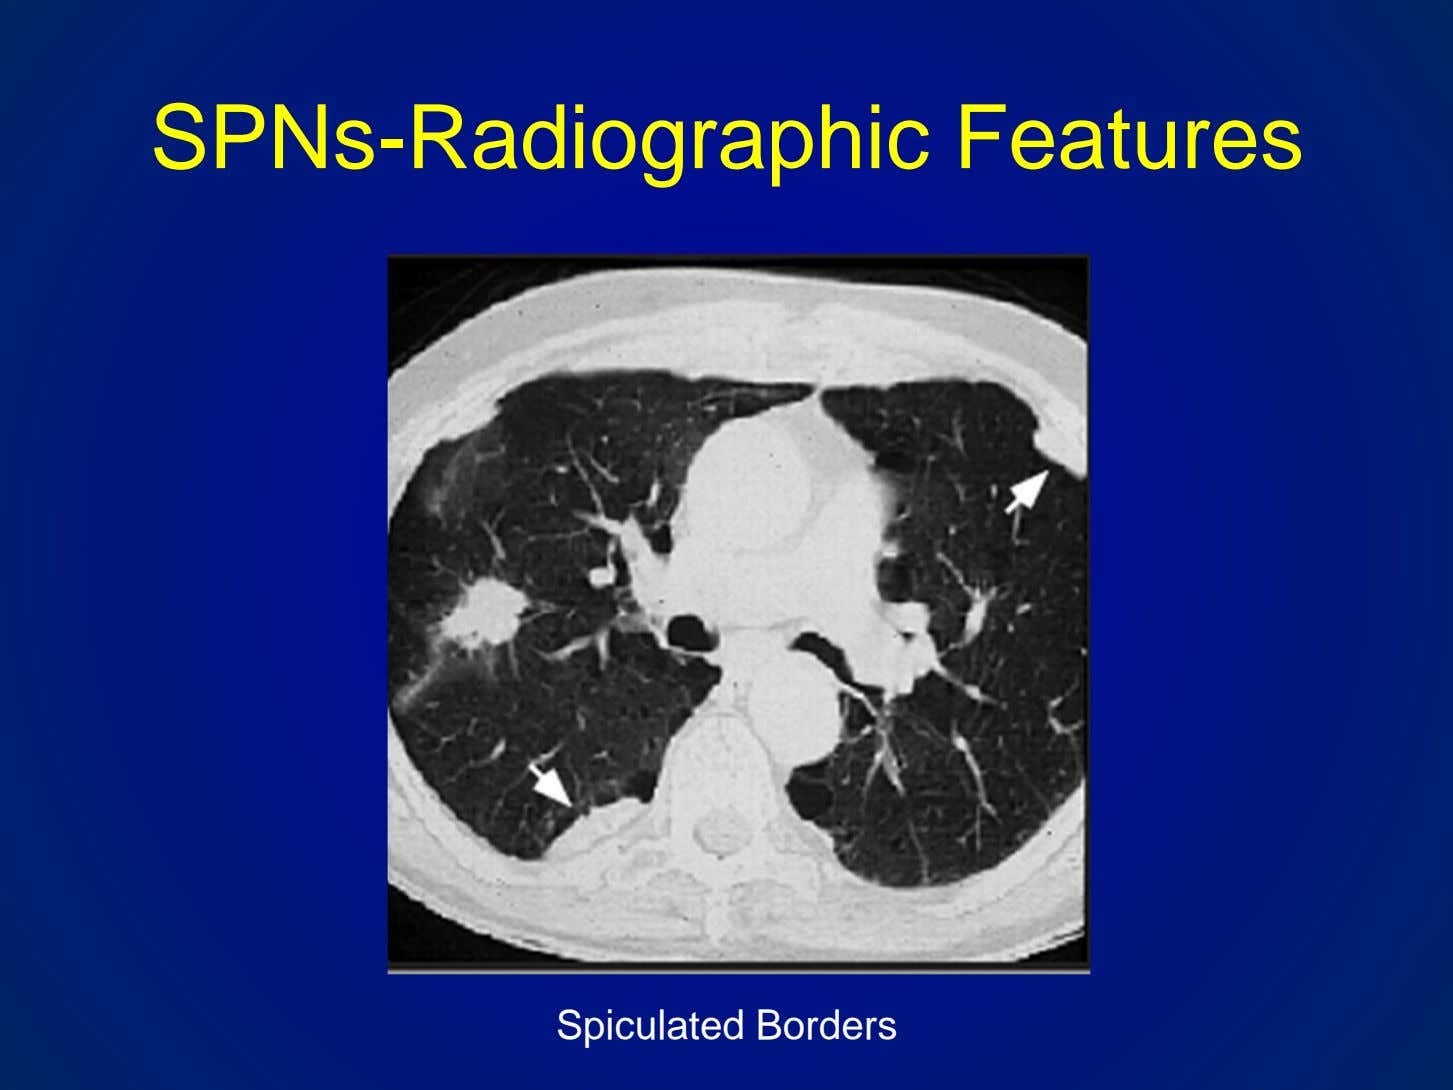 SPNs-Radiographic Features Spiculated Borders